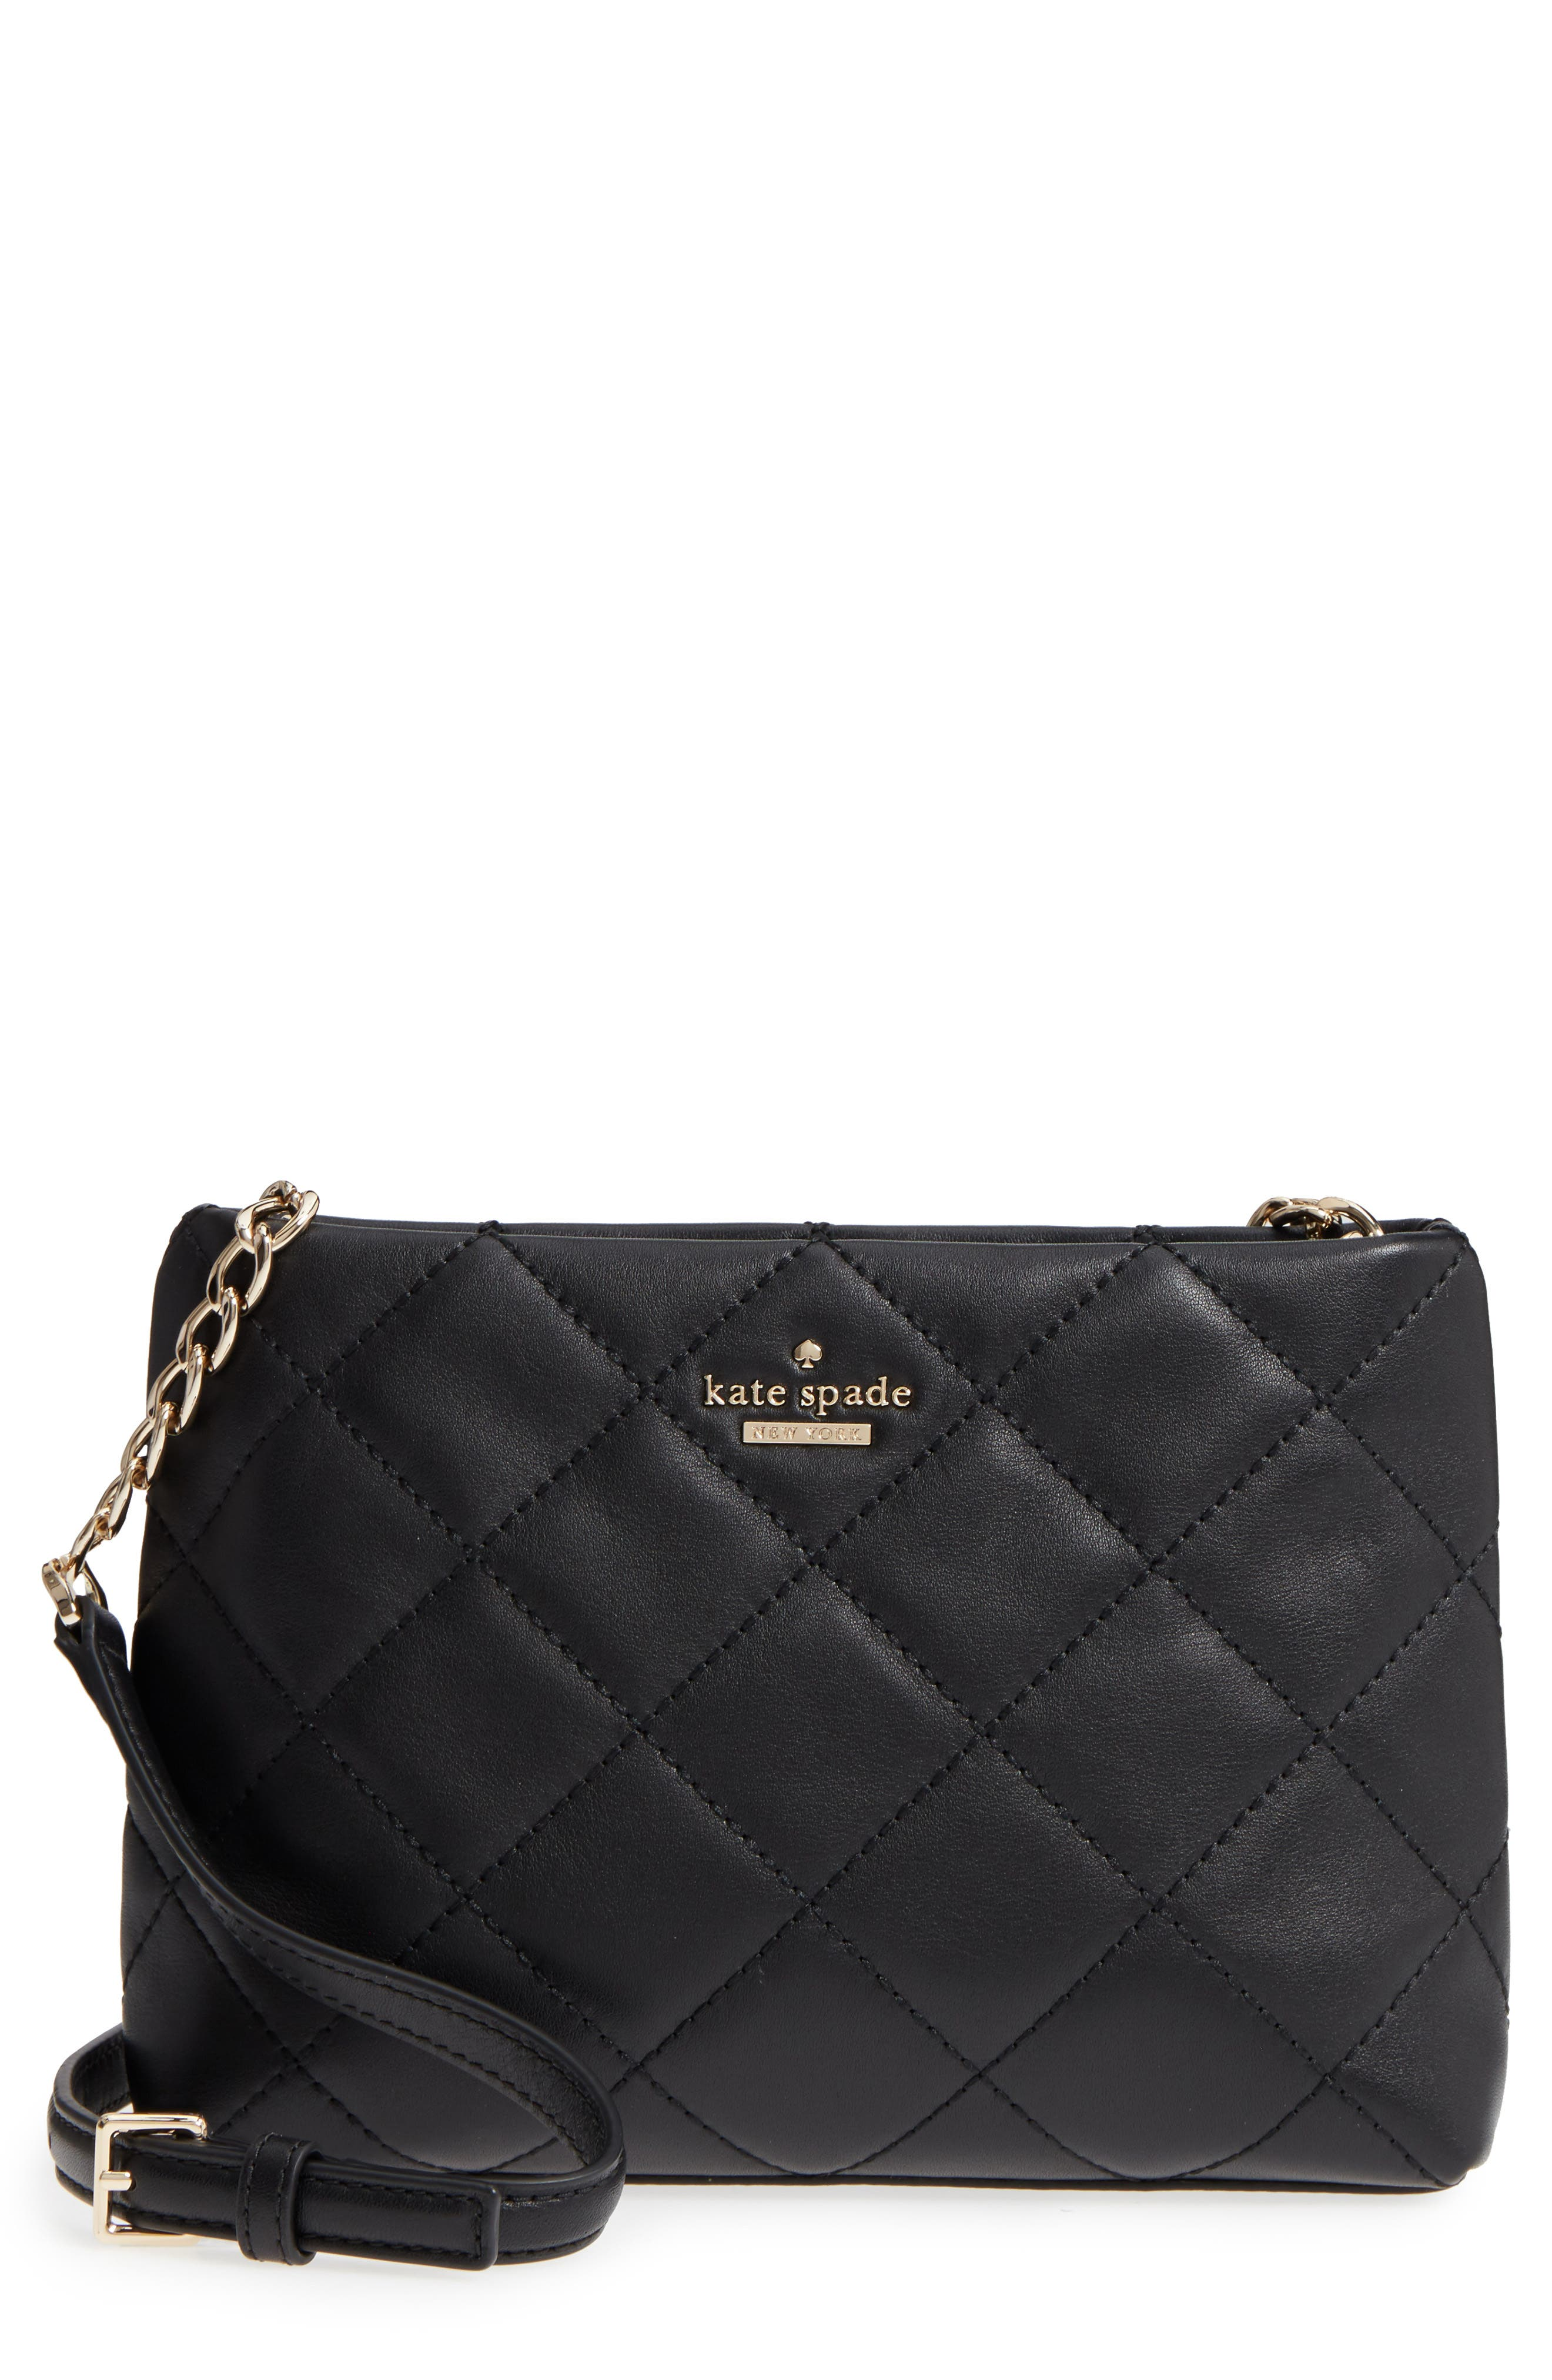 KATE SPADE NEW YORK,                             emerson place caterina leather crossbody bag,                             Main thumbnail 1, color,                             001